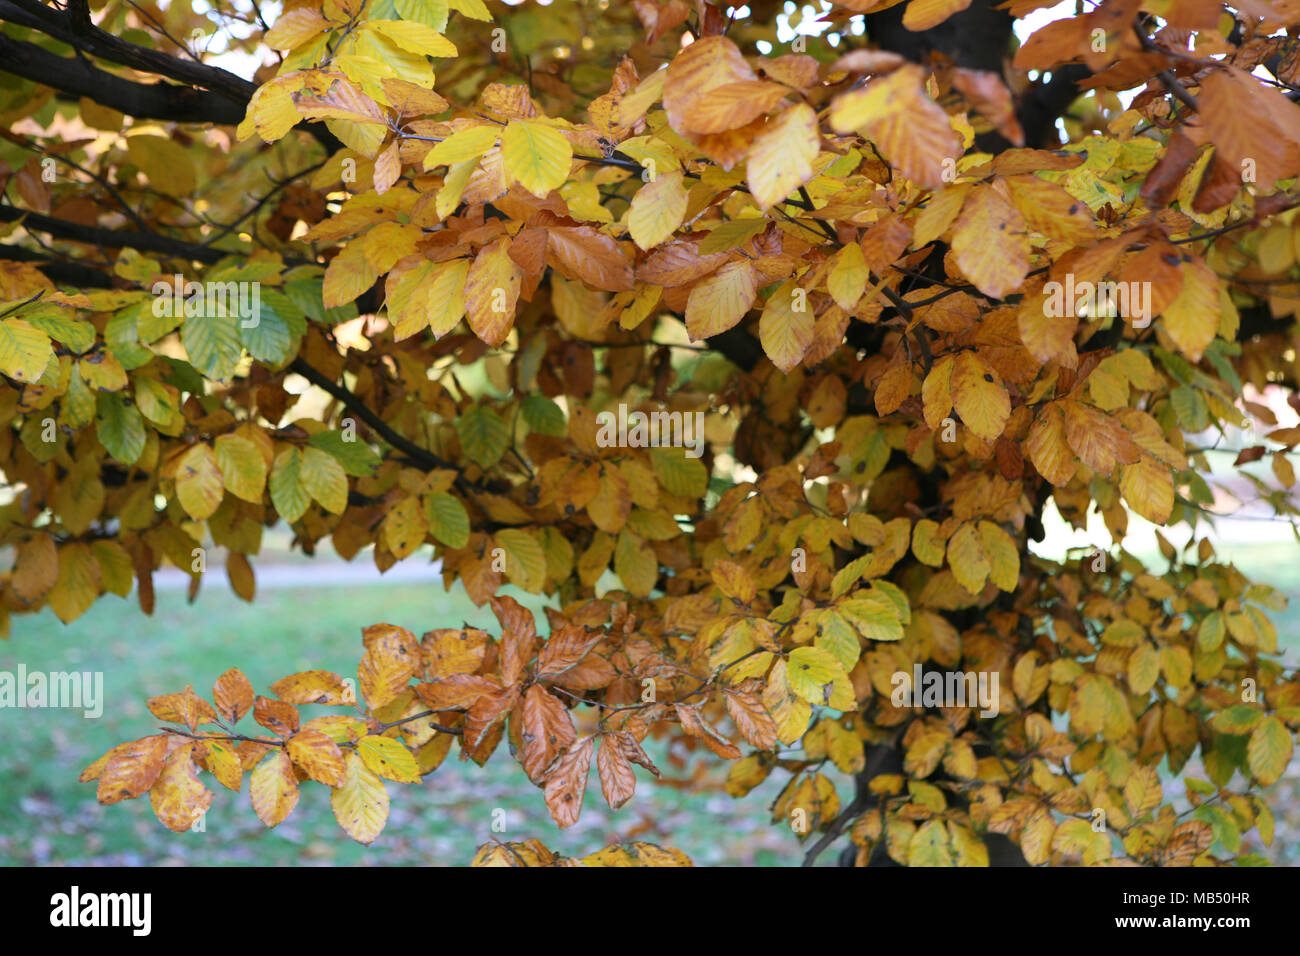 Yellow brown leaves on the autumn fall tree - Stock Image